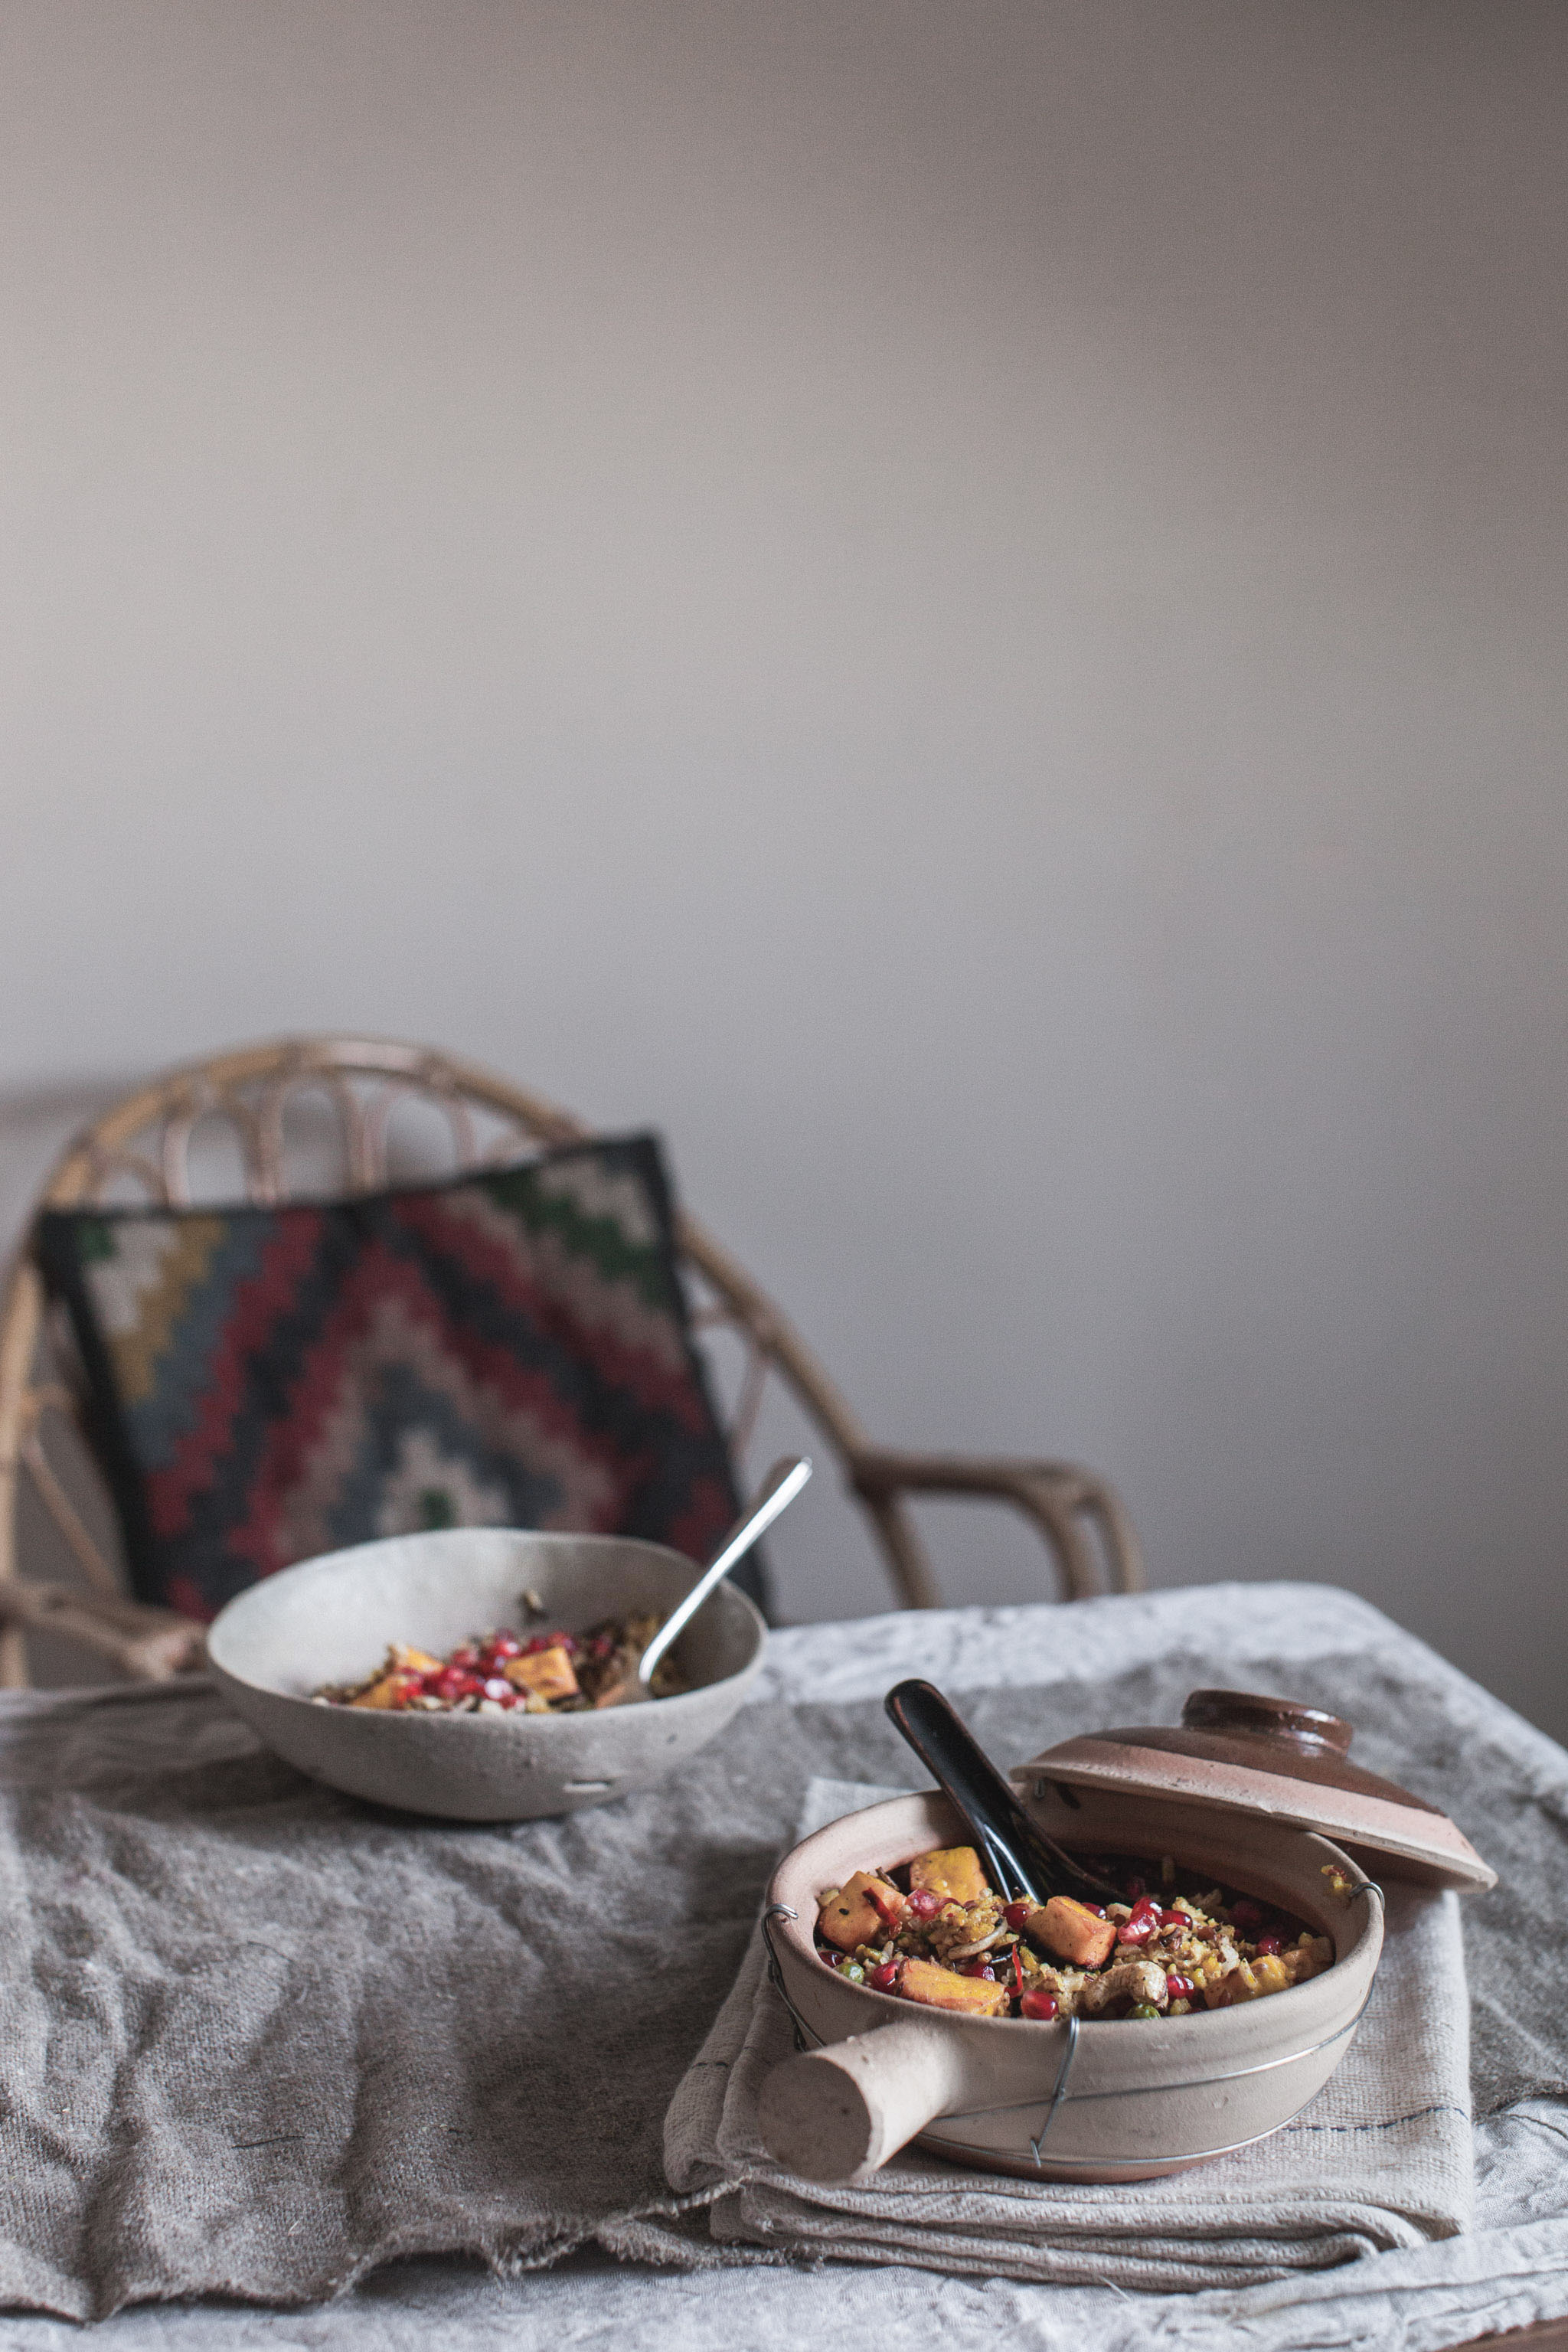 Saffron paneer rice with pomegranate and cashews.  Retreat // Food and lifestyle blog based in Sussex. Photography by Emma Gutteridge.